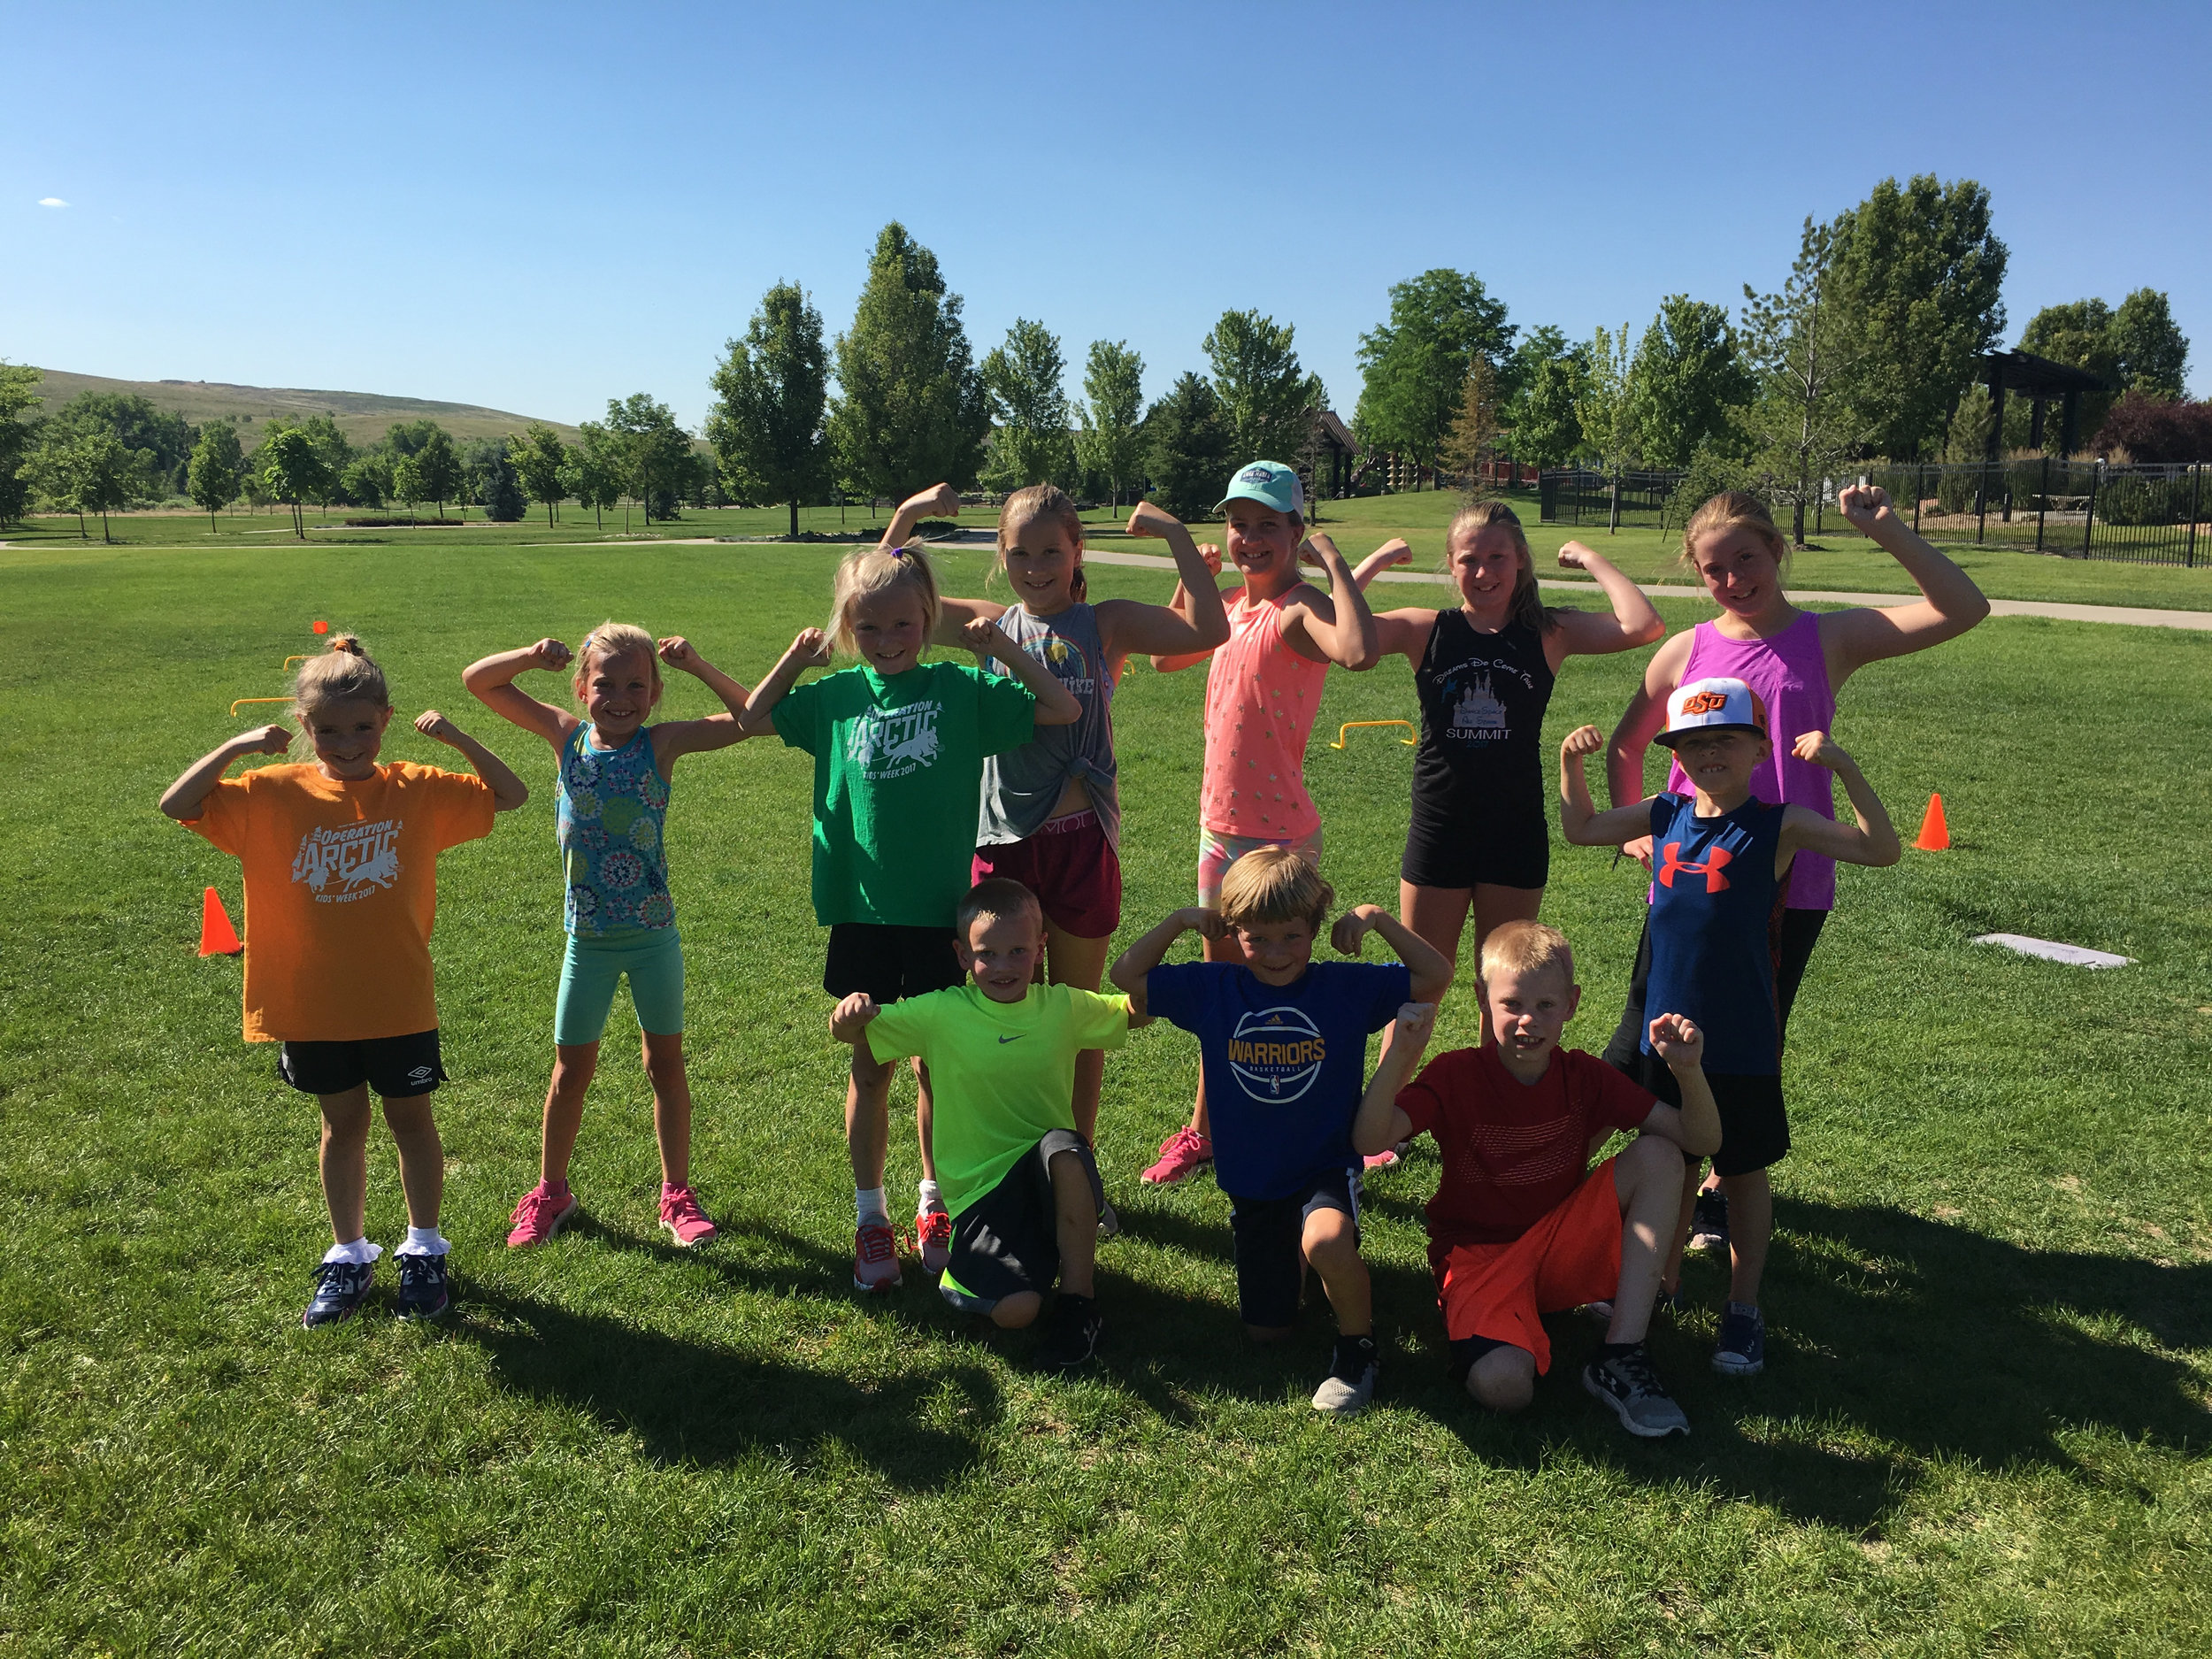 youth fit camp pic.jpg